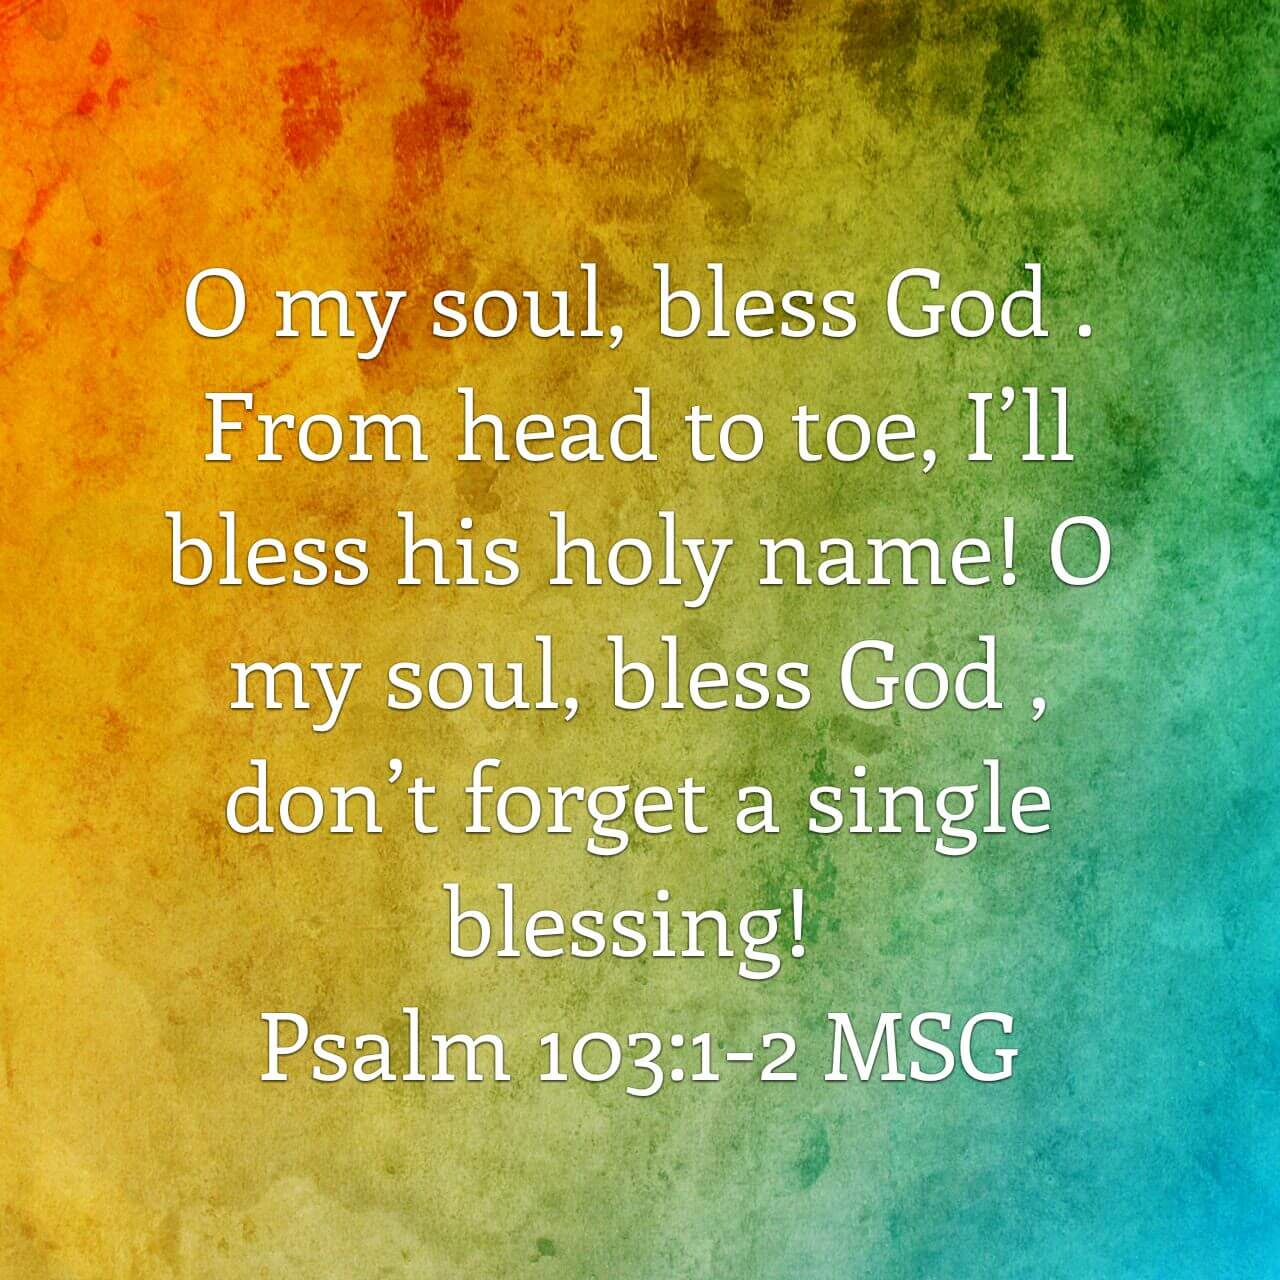 psalm 103:1-2 MSG